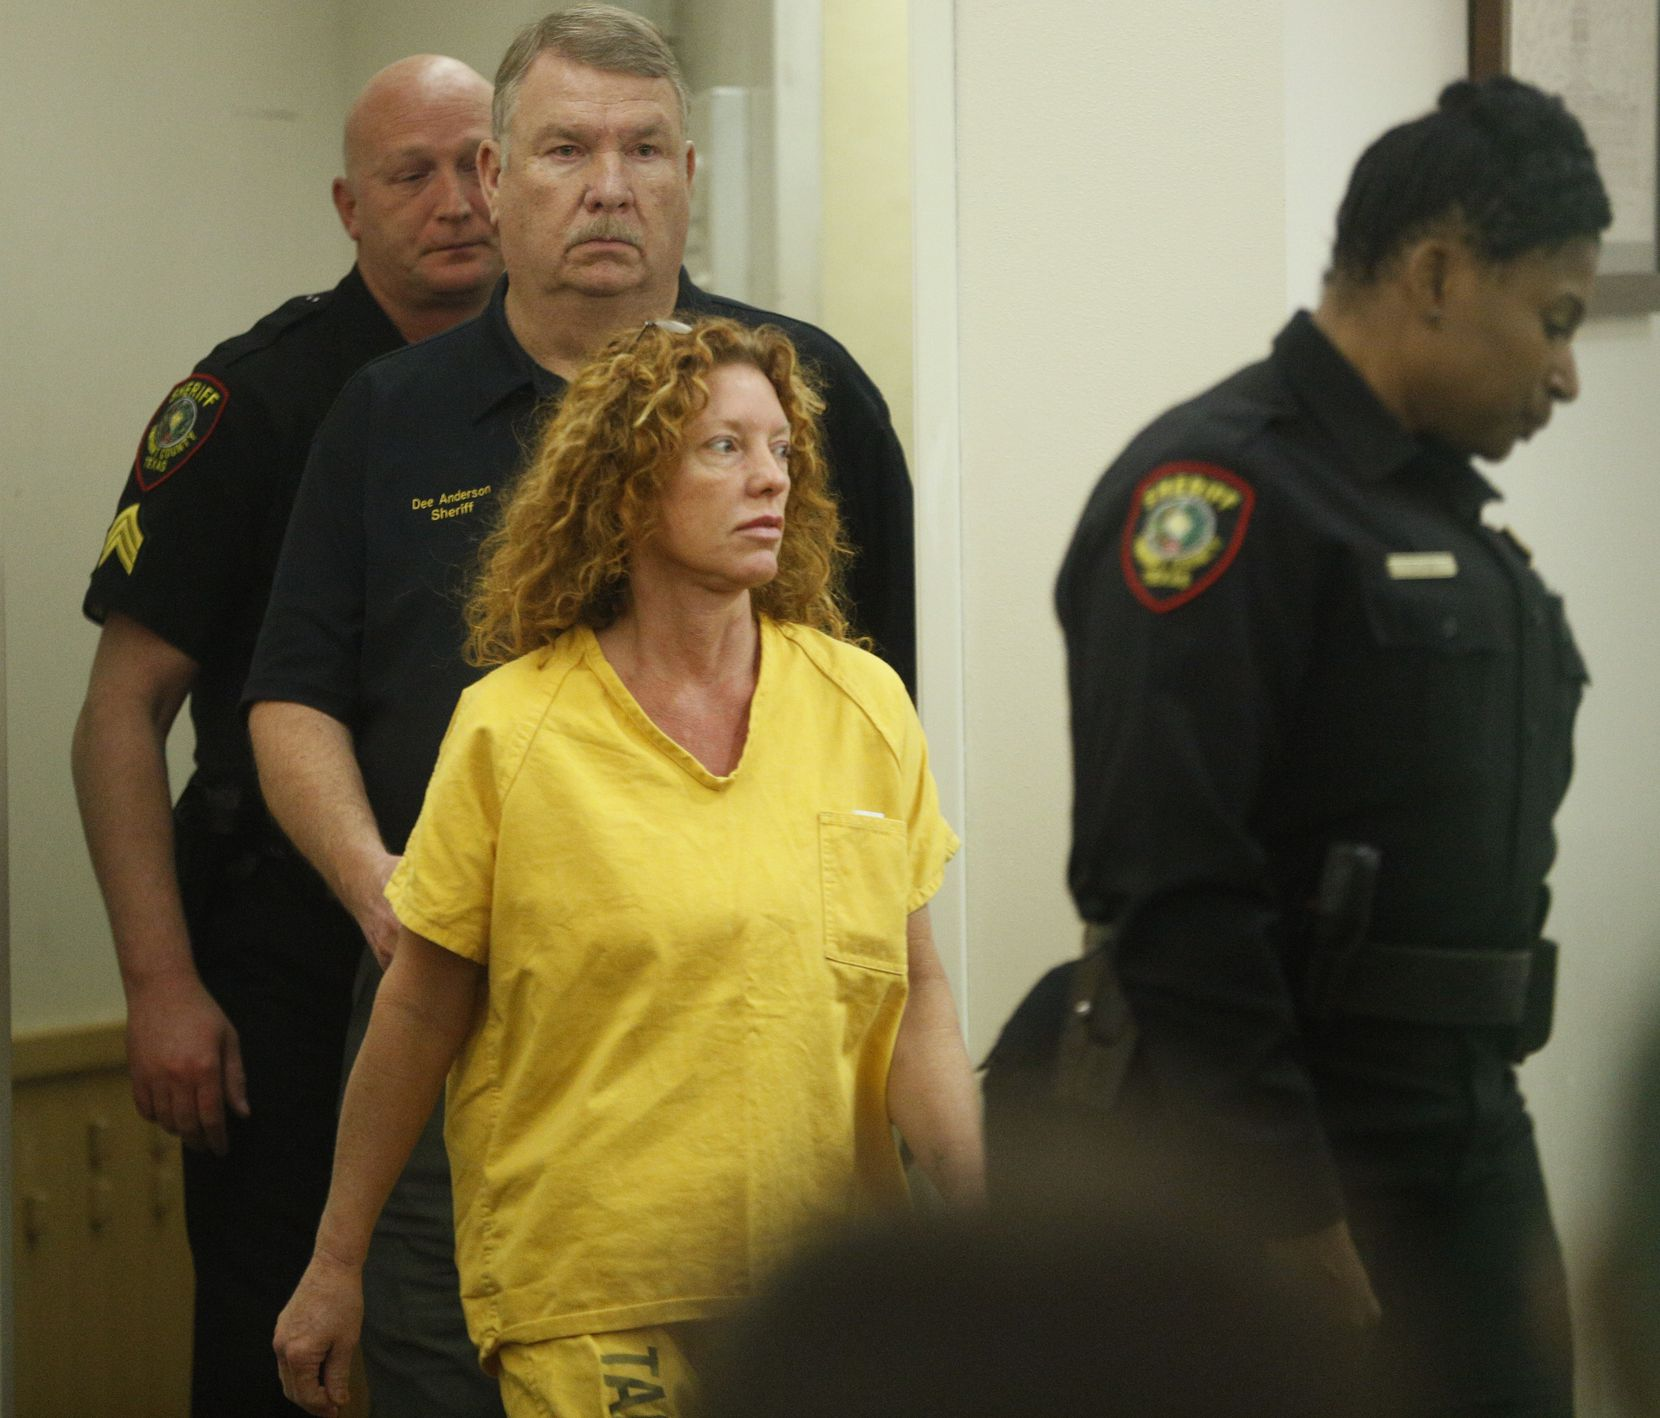 Tonya Couch walks into her arraignment by Judge Wayne Salvant on Jan. 8, 2016.